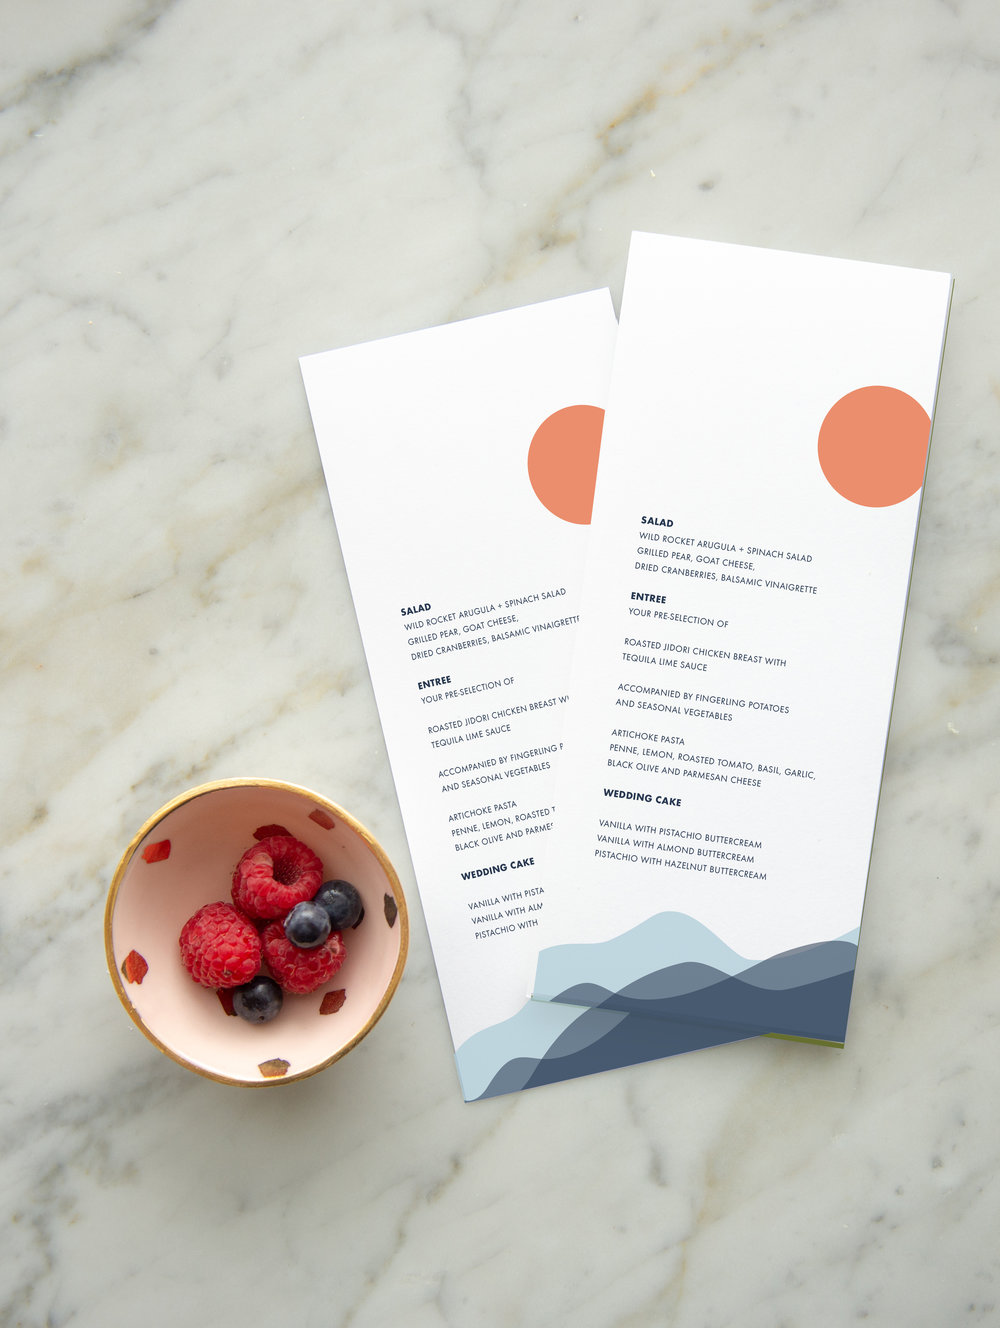 MOUNTAIN WEDDING MENU